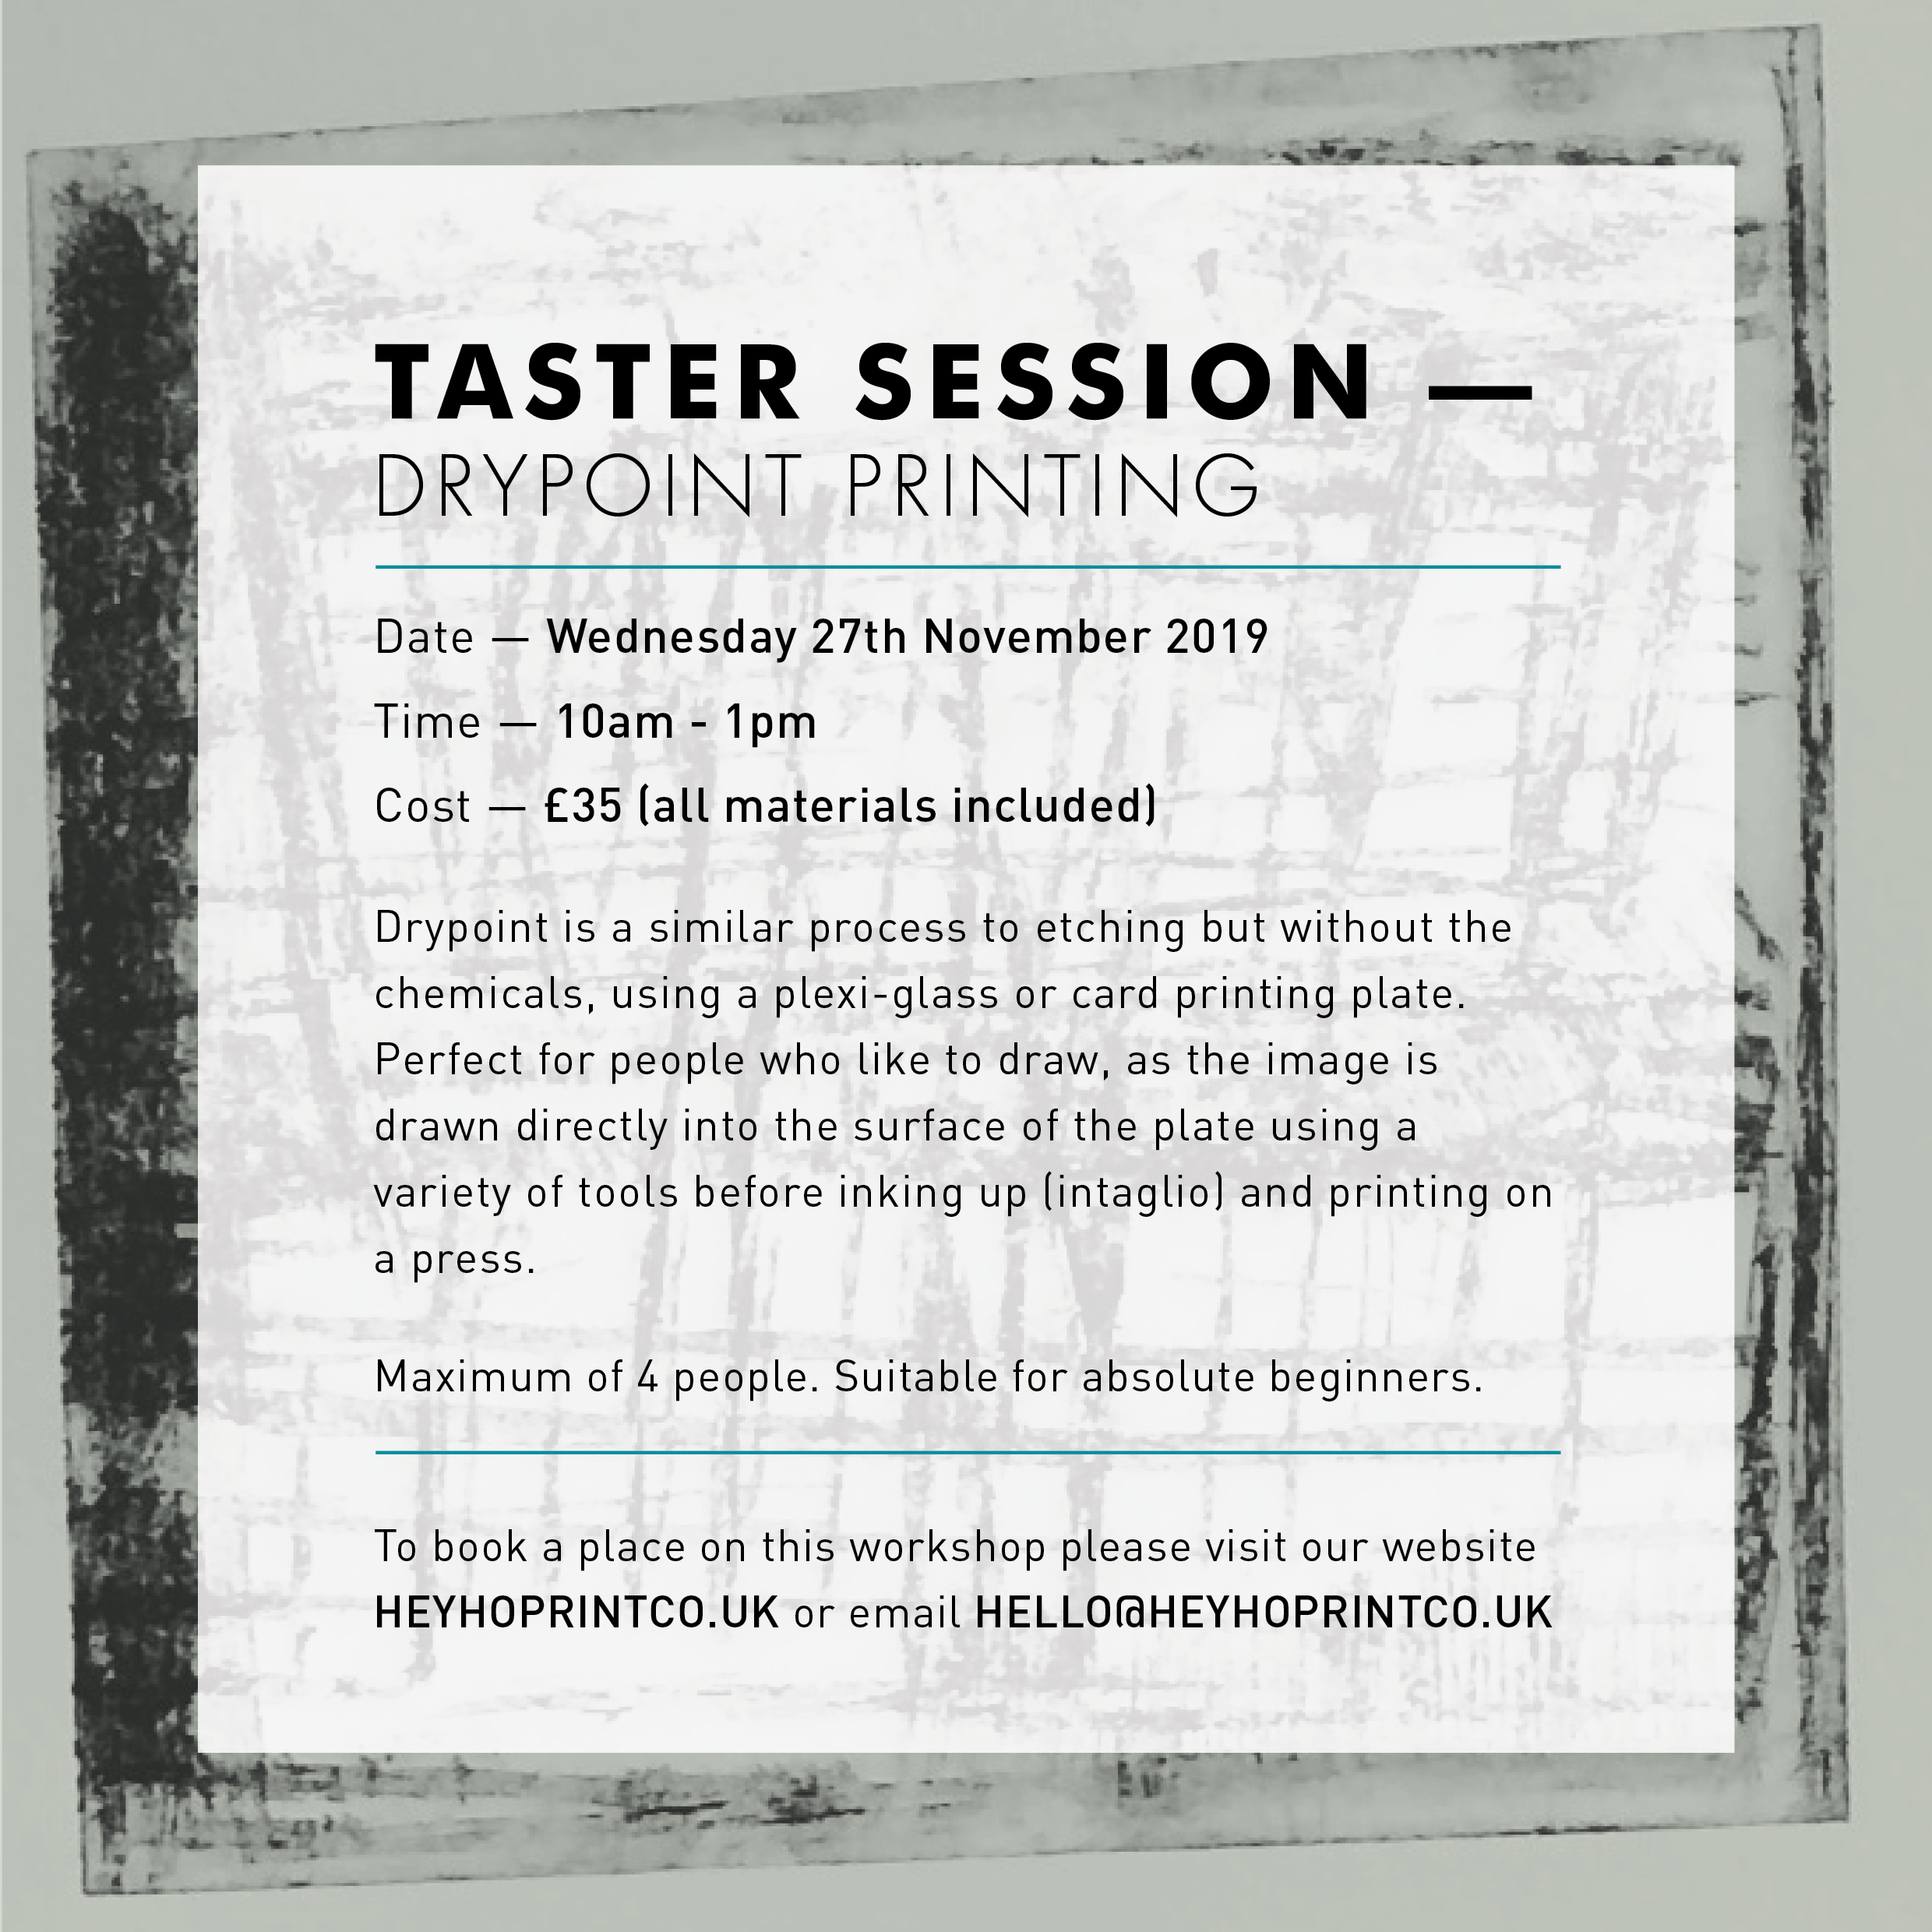 Drypoint Printing - Taster Course 27th November 2019